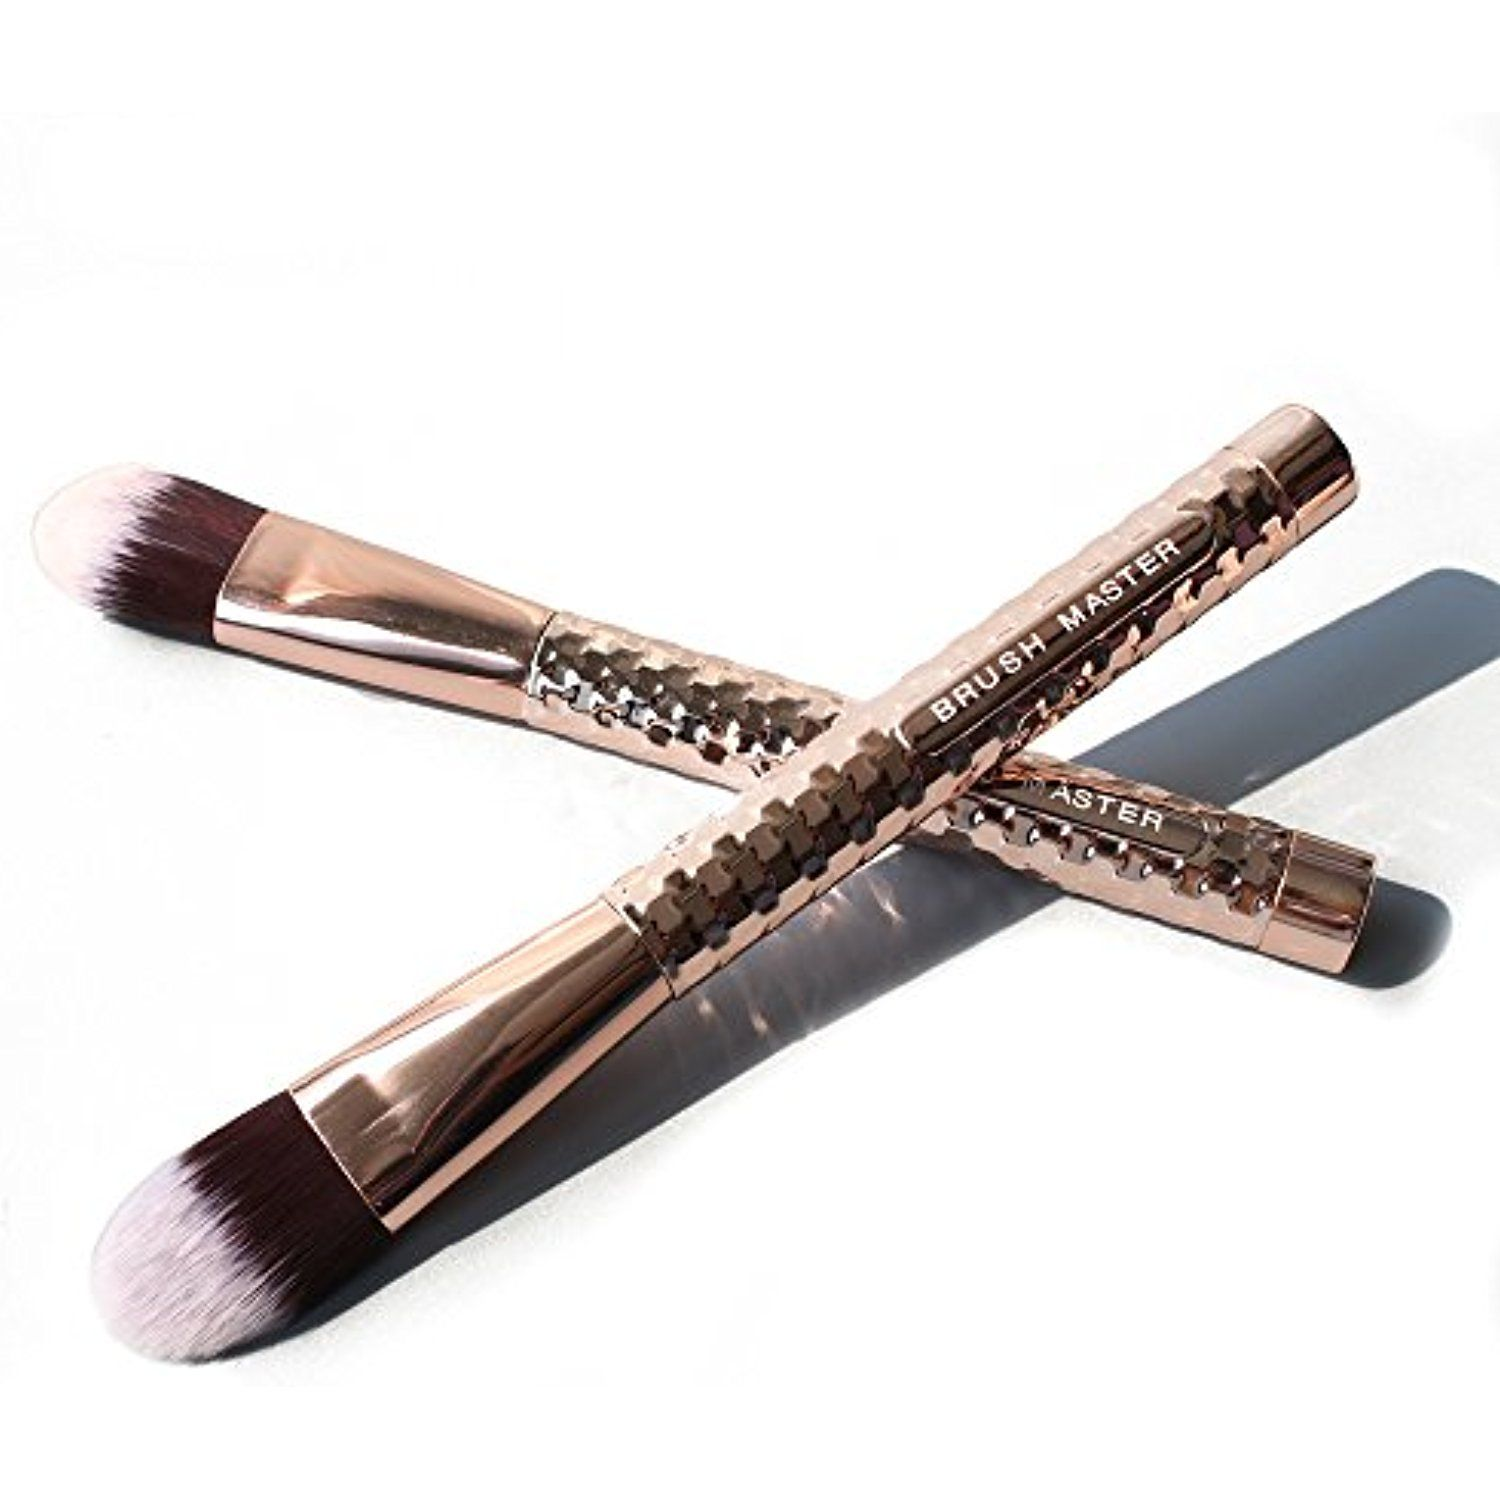 Brush Master Professional Concealer Foundation Makeup